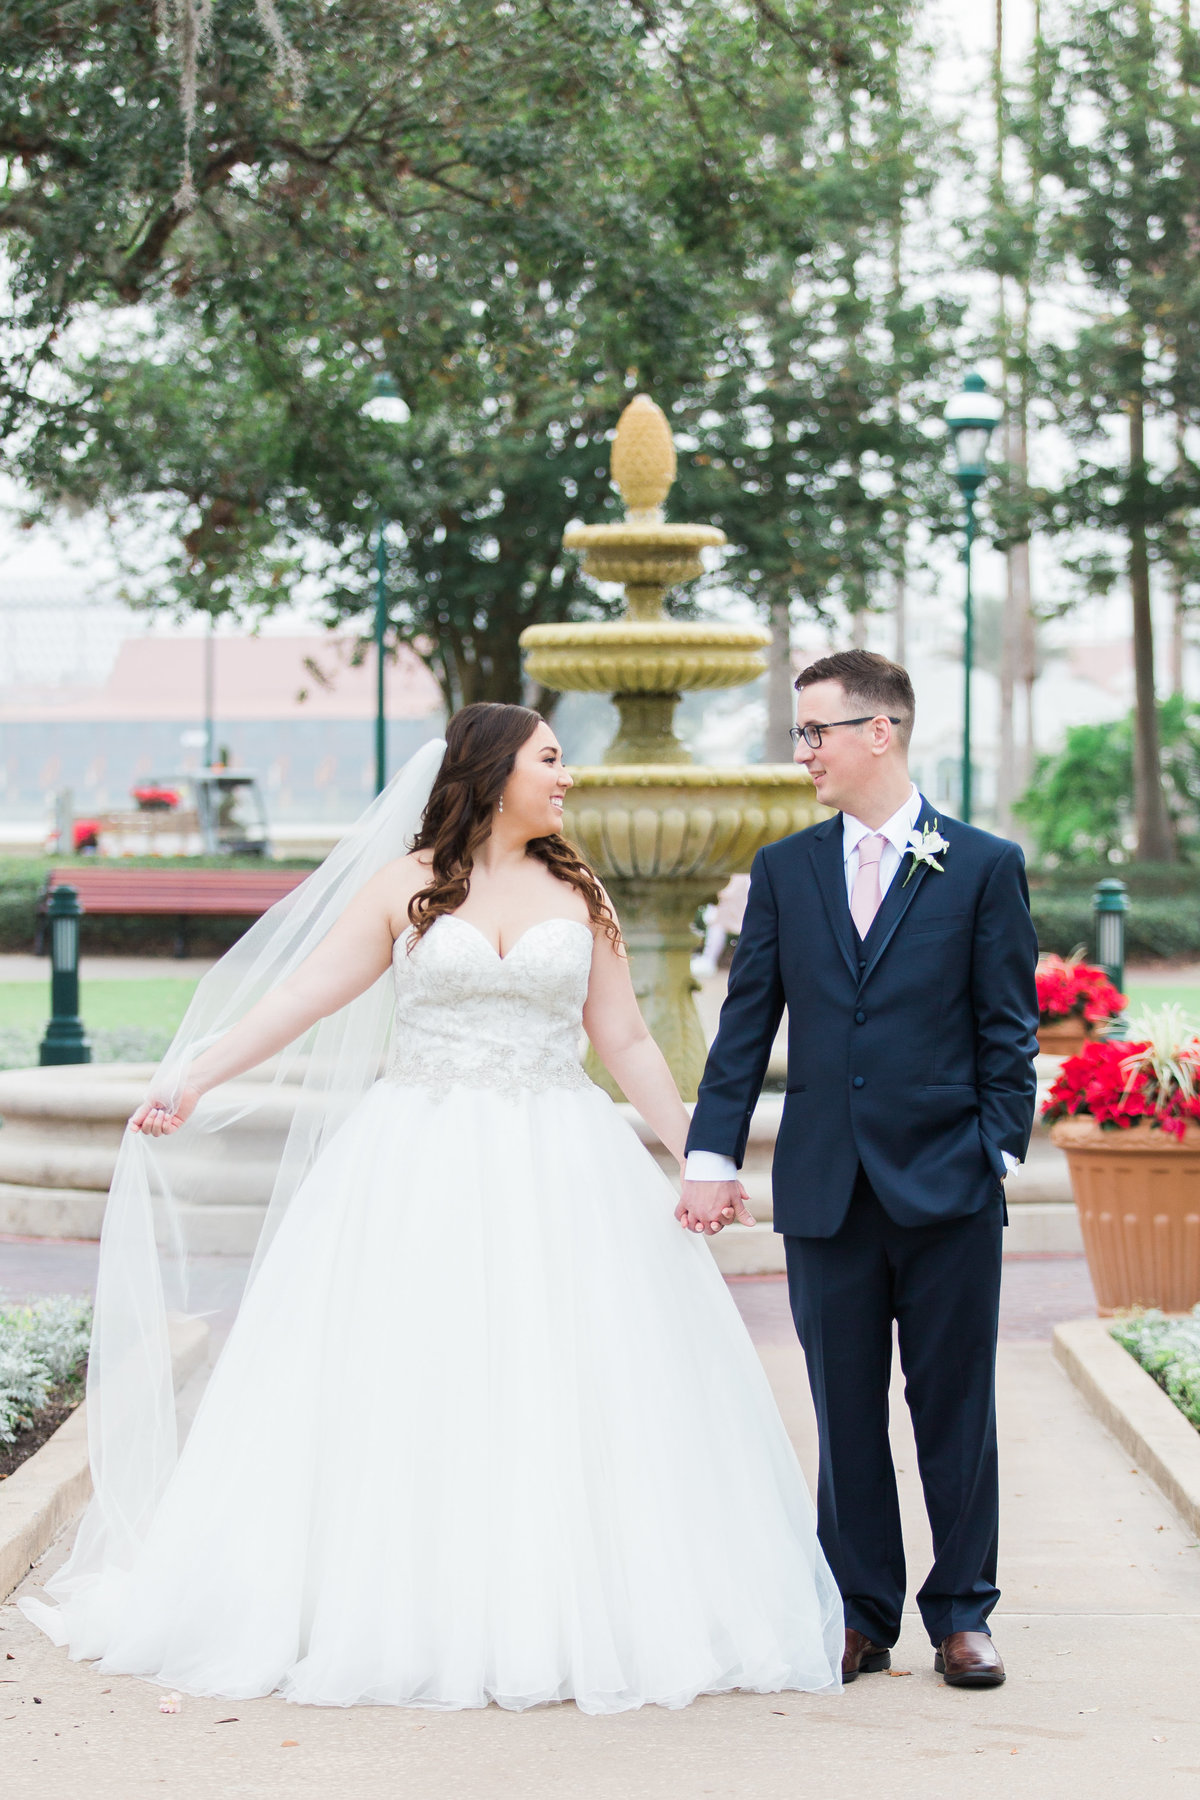 Jess Collins Photography Our Disney Wedding 2017 (244 of 668)